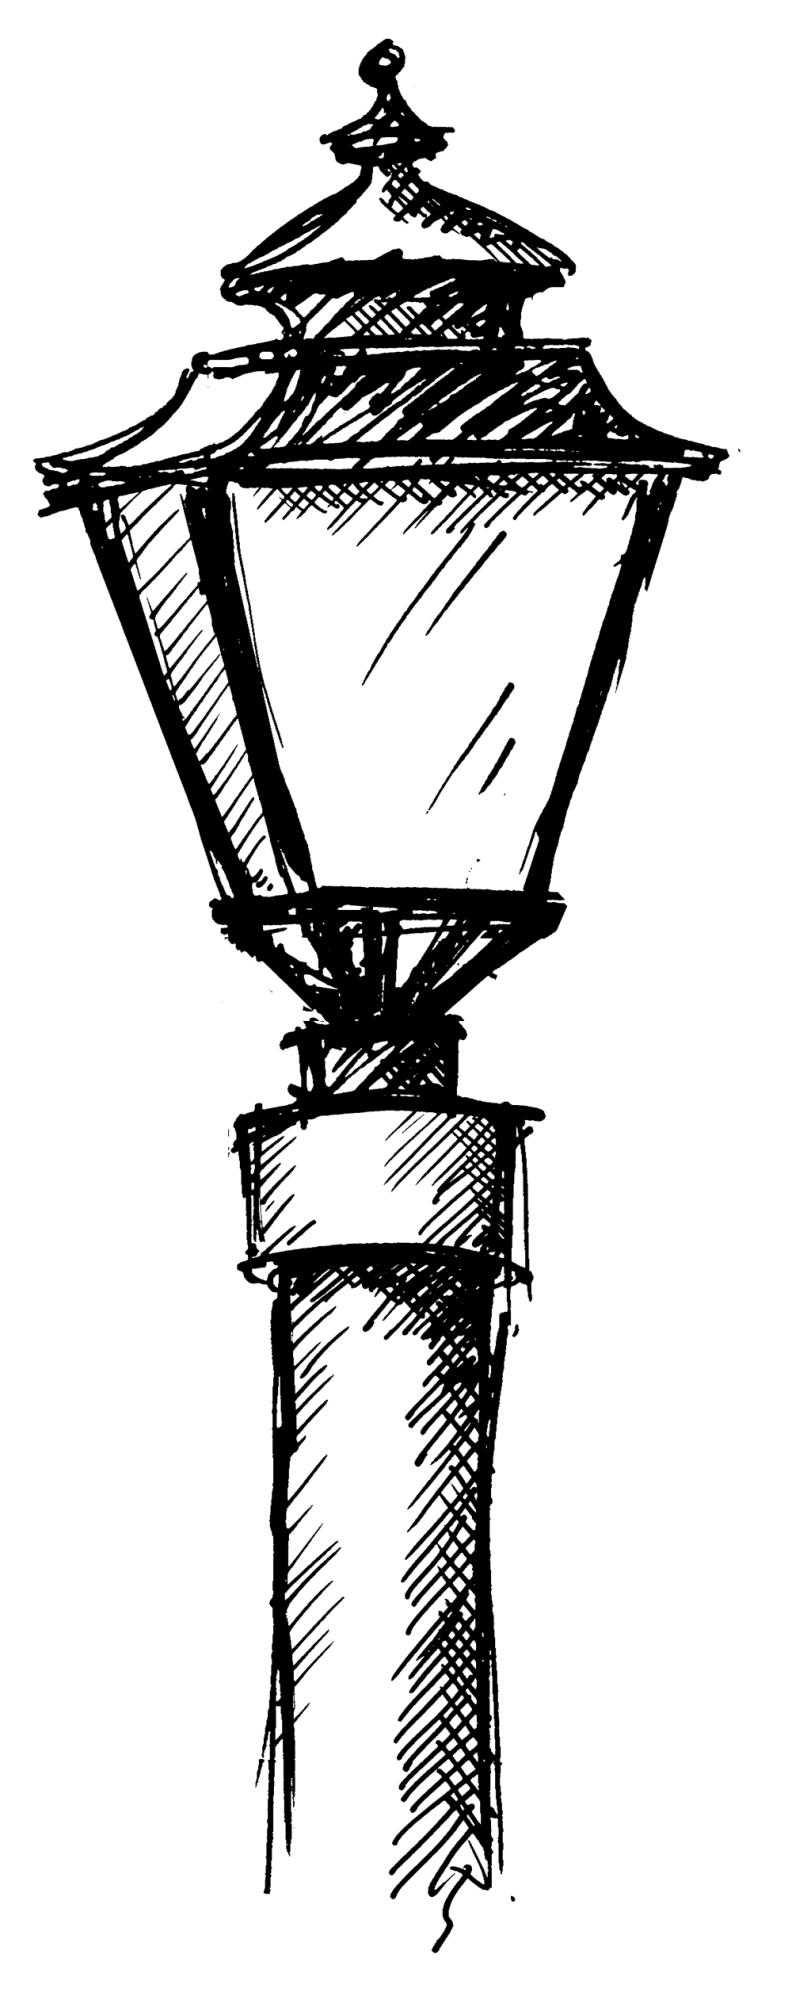 lightpost-web1.jpg